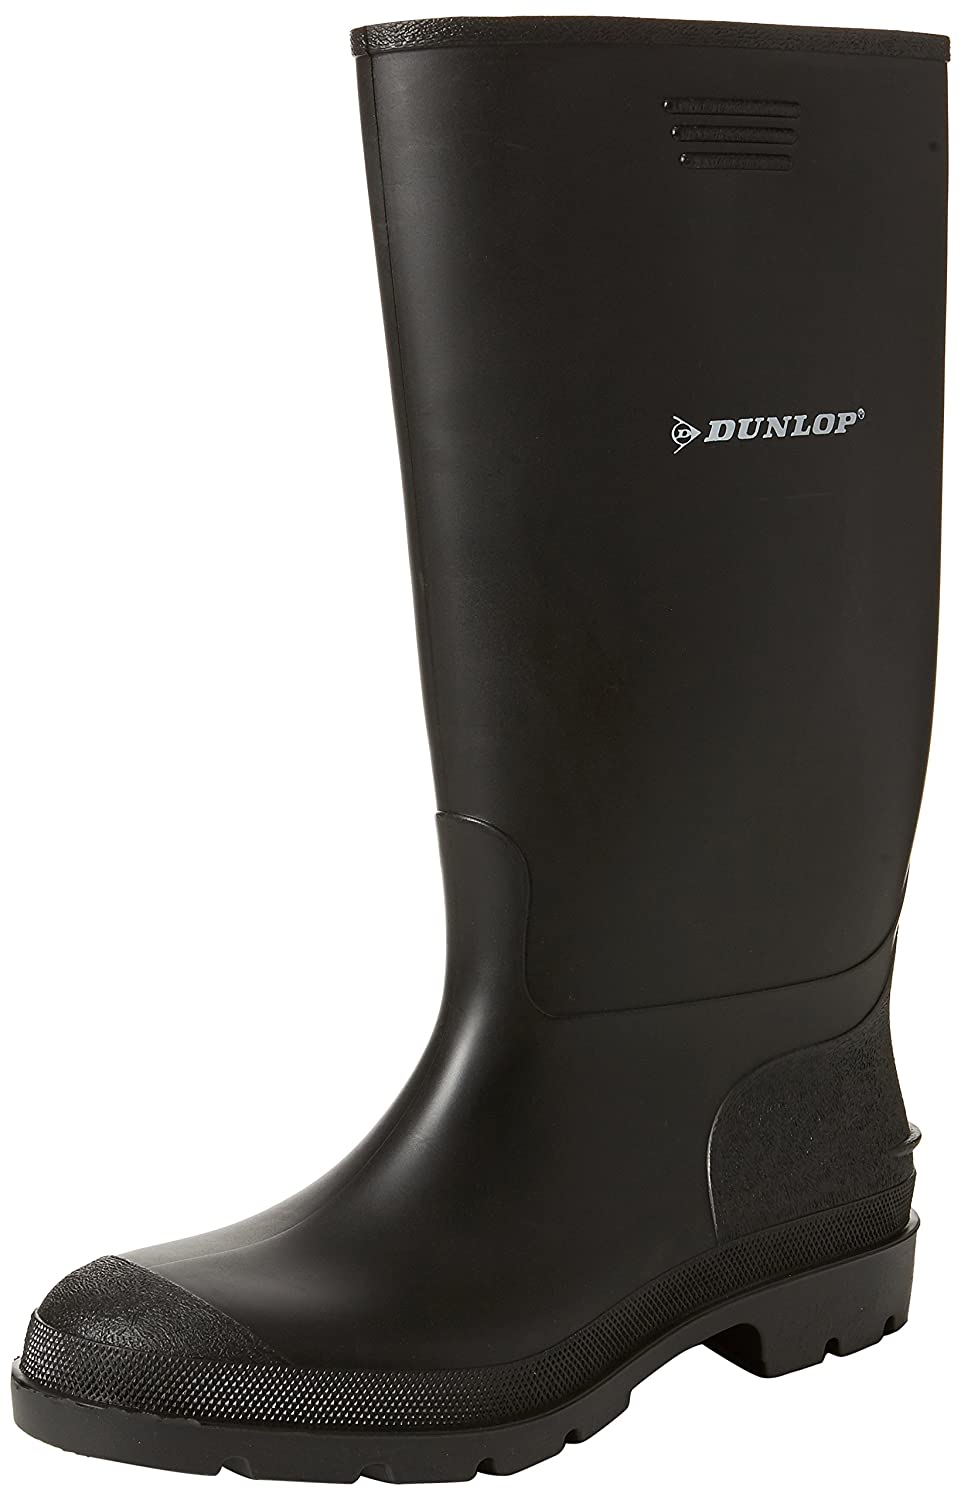 332381f8152 Dunlop 380PP Rubber Boots for Men